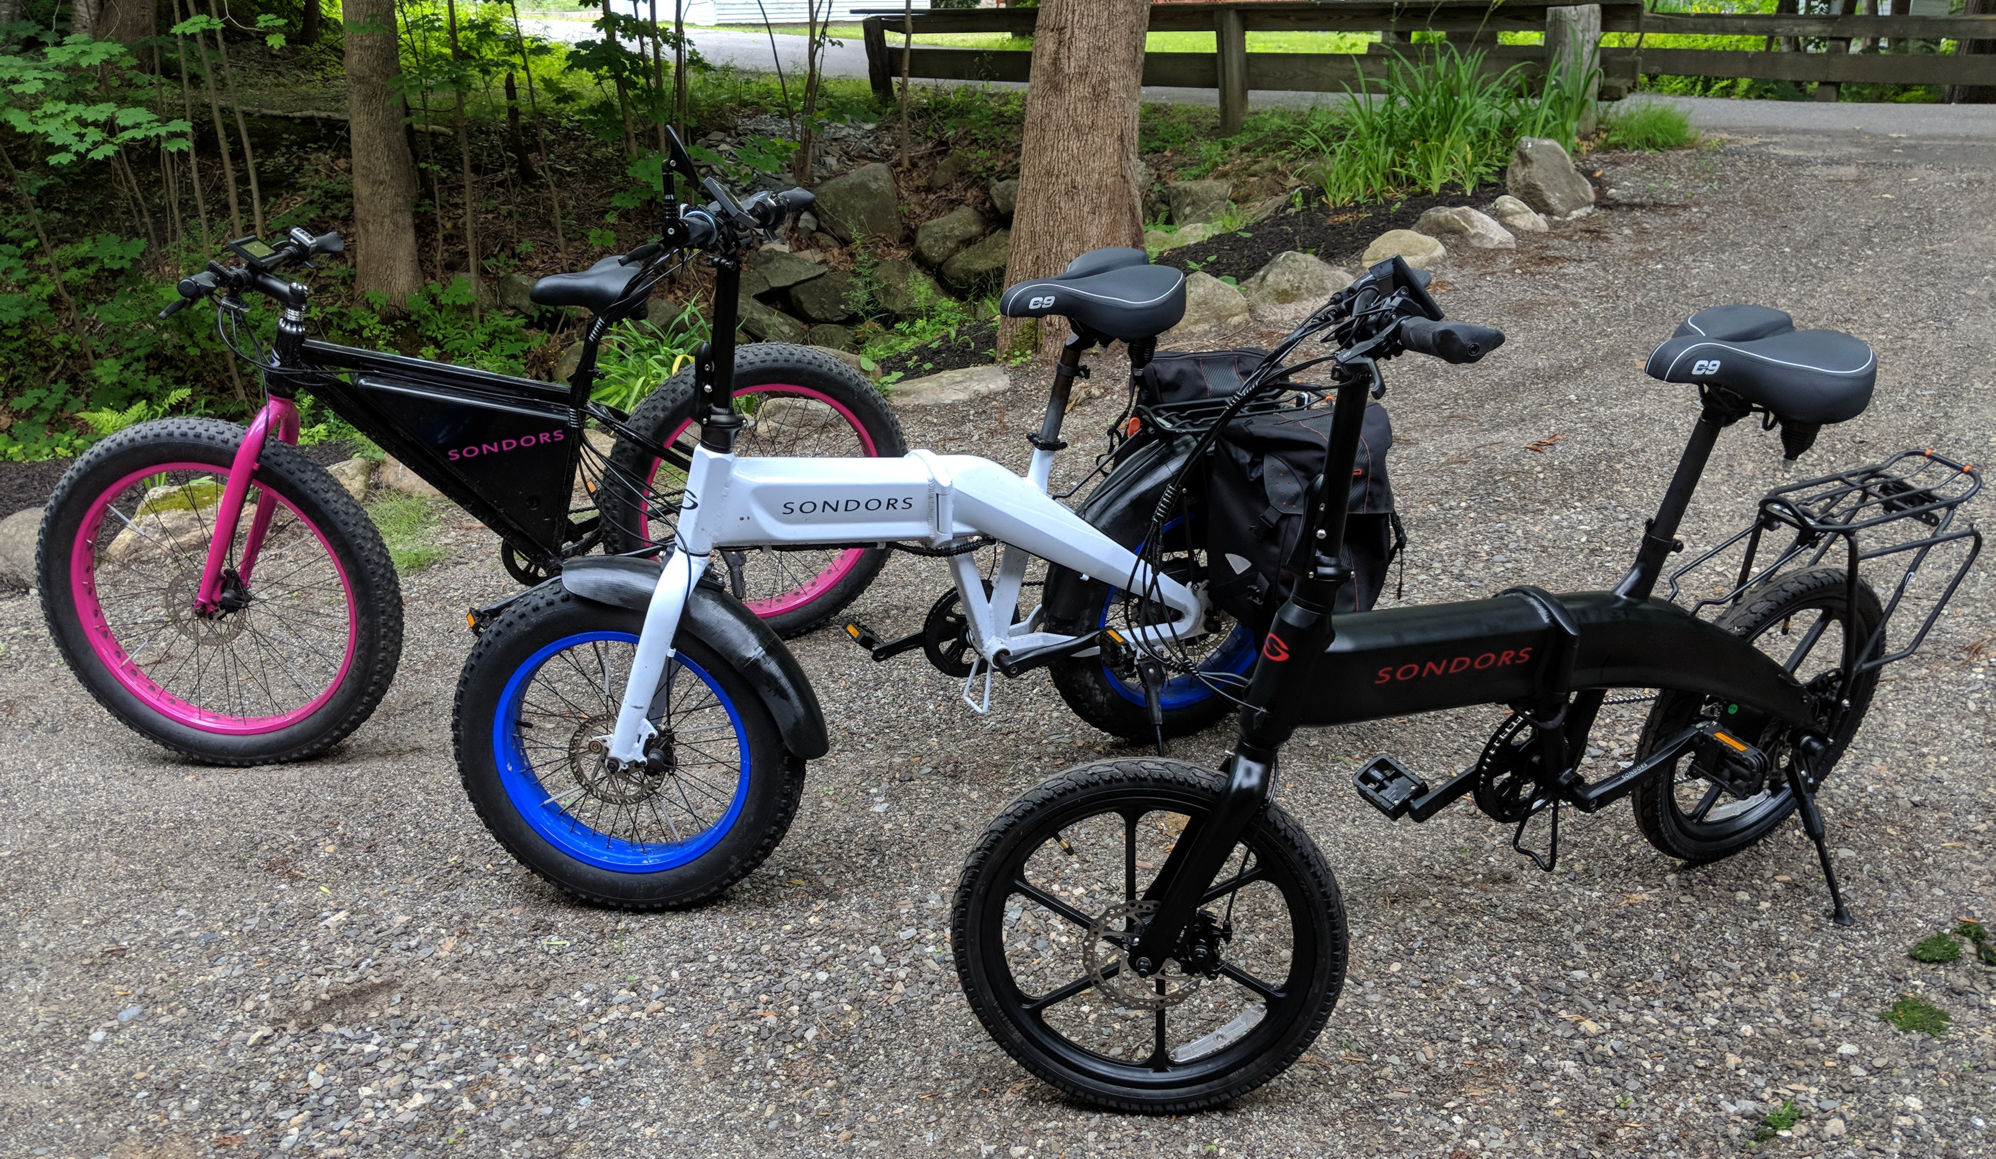 My Interest In Electric Ist Bicycles Has Not Waned A Bit Since I Wrote About Boat Ebike Research Early Last Year Fact Now Own Five